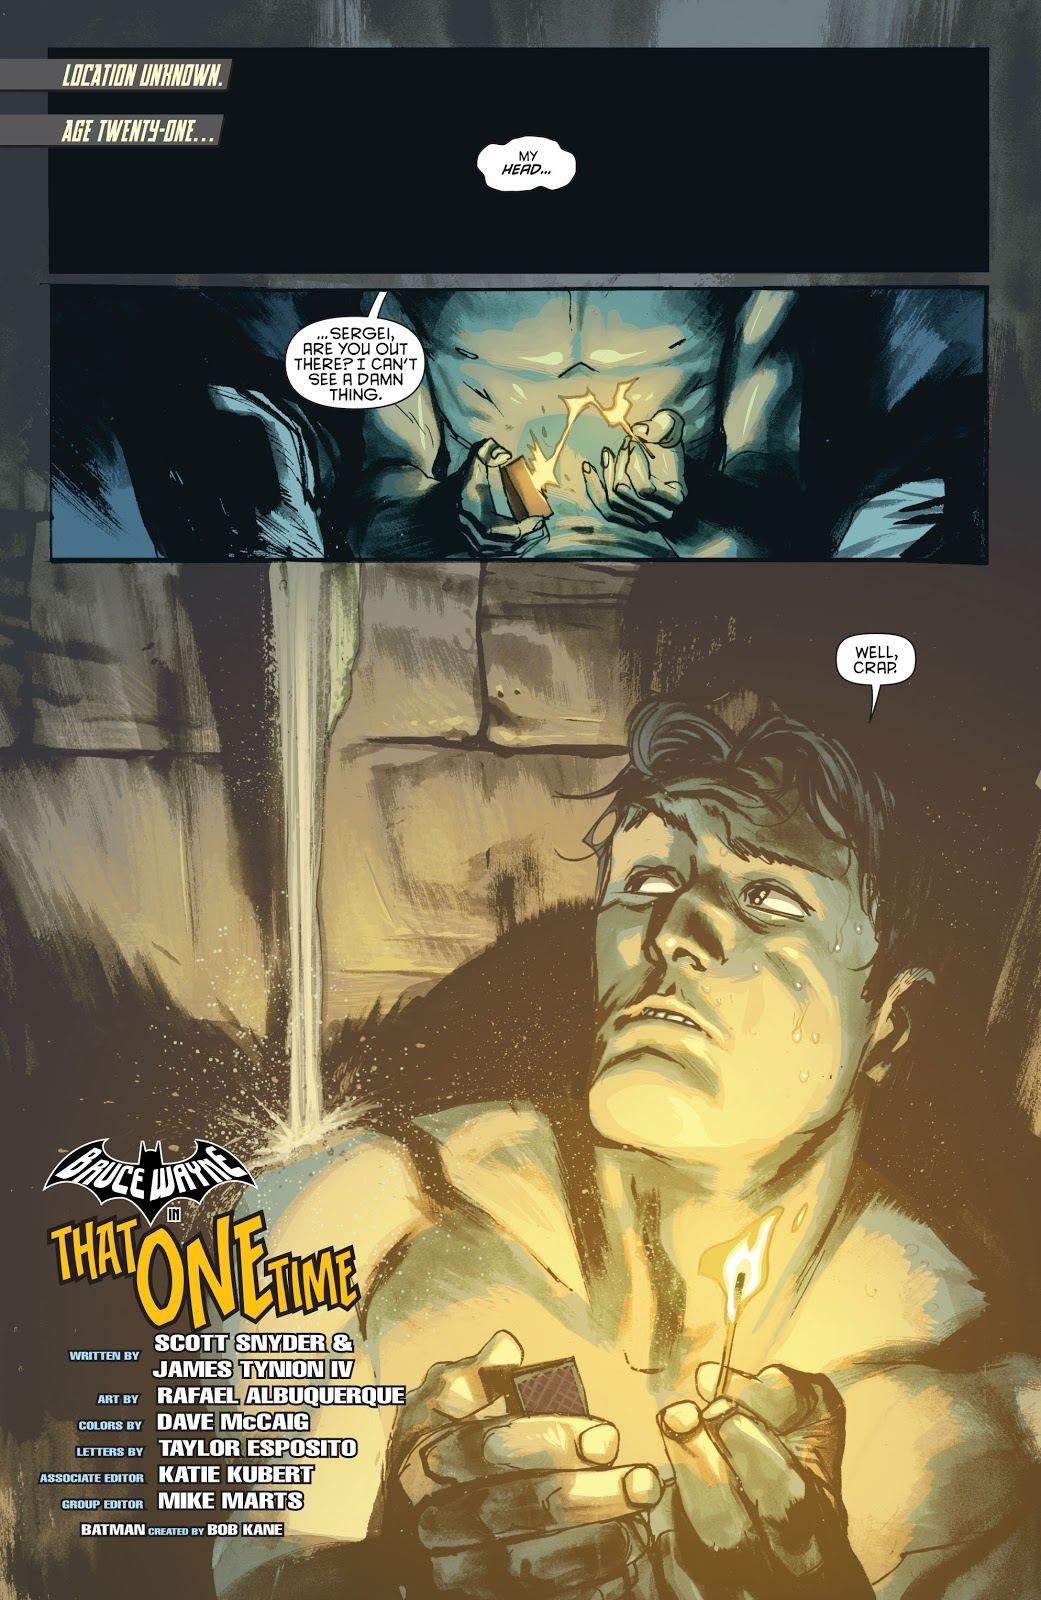 bruce-wayne-learns-how-to-think-outside-the-box-new-52,bruce wayne learns, how to think outside the box new 52,how to think outside the box,new 52,bruce wayne,batman learns,batman learns how to think outside the box